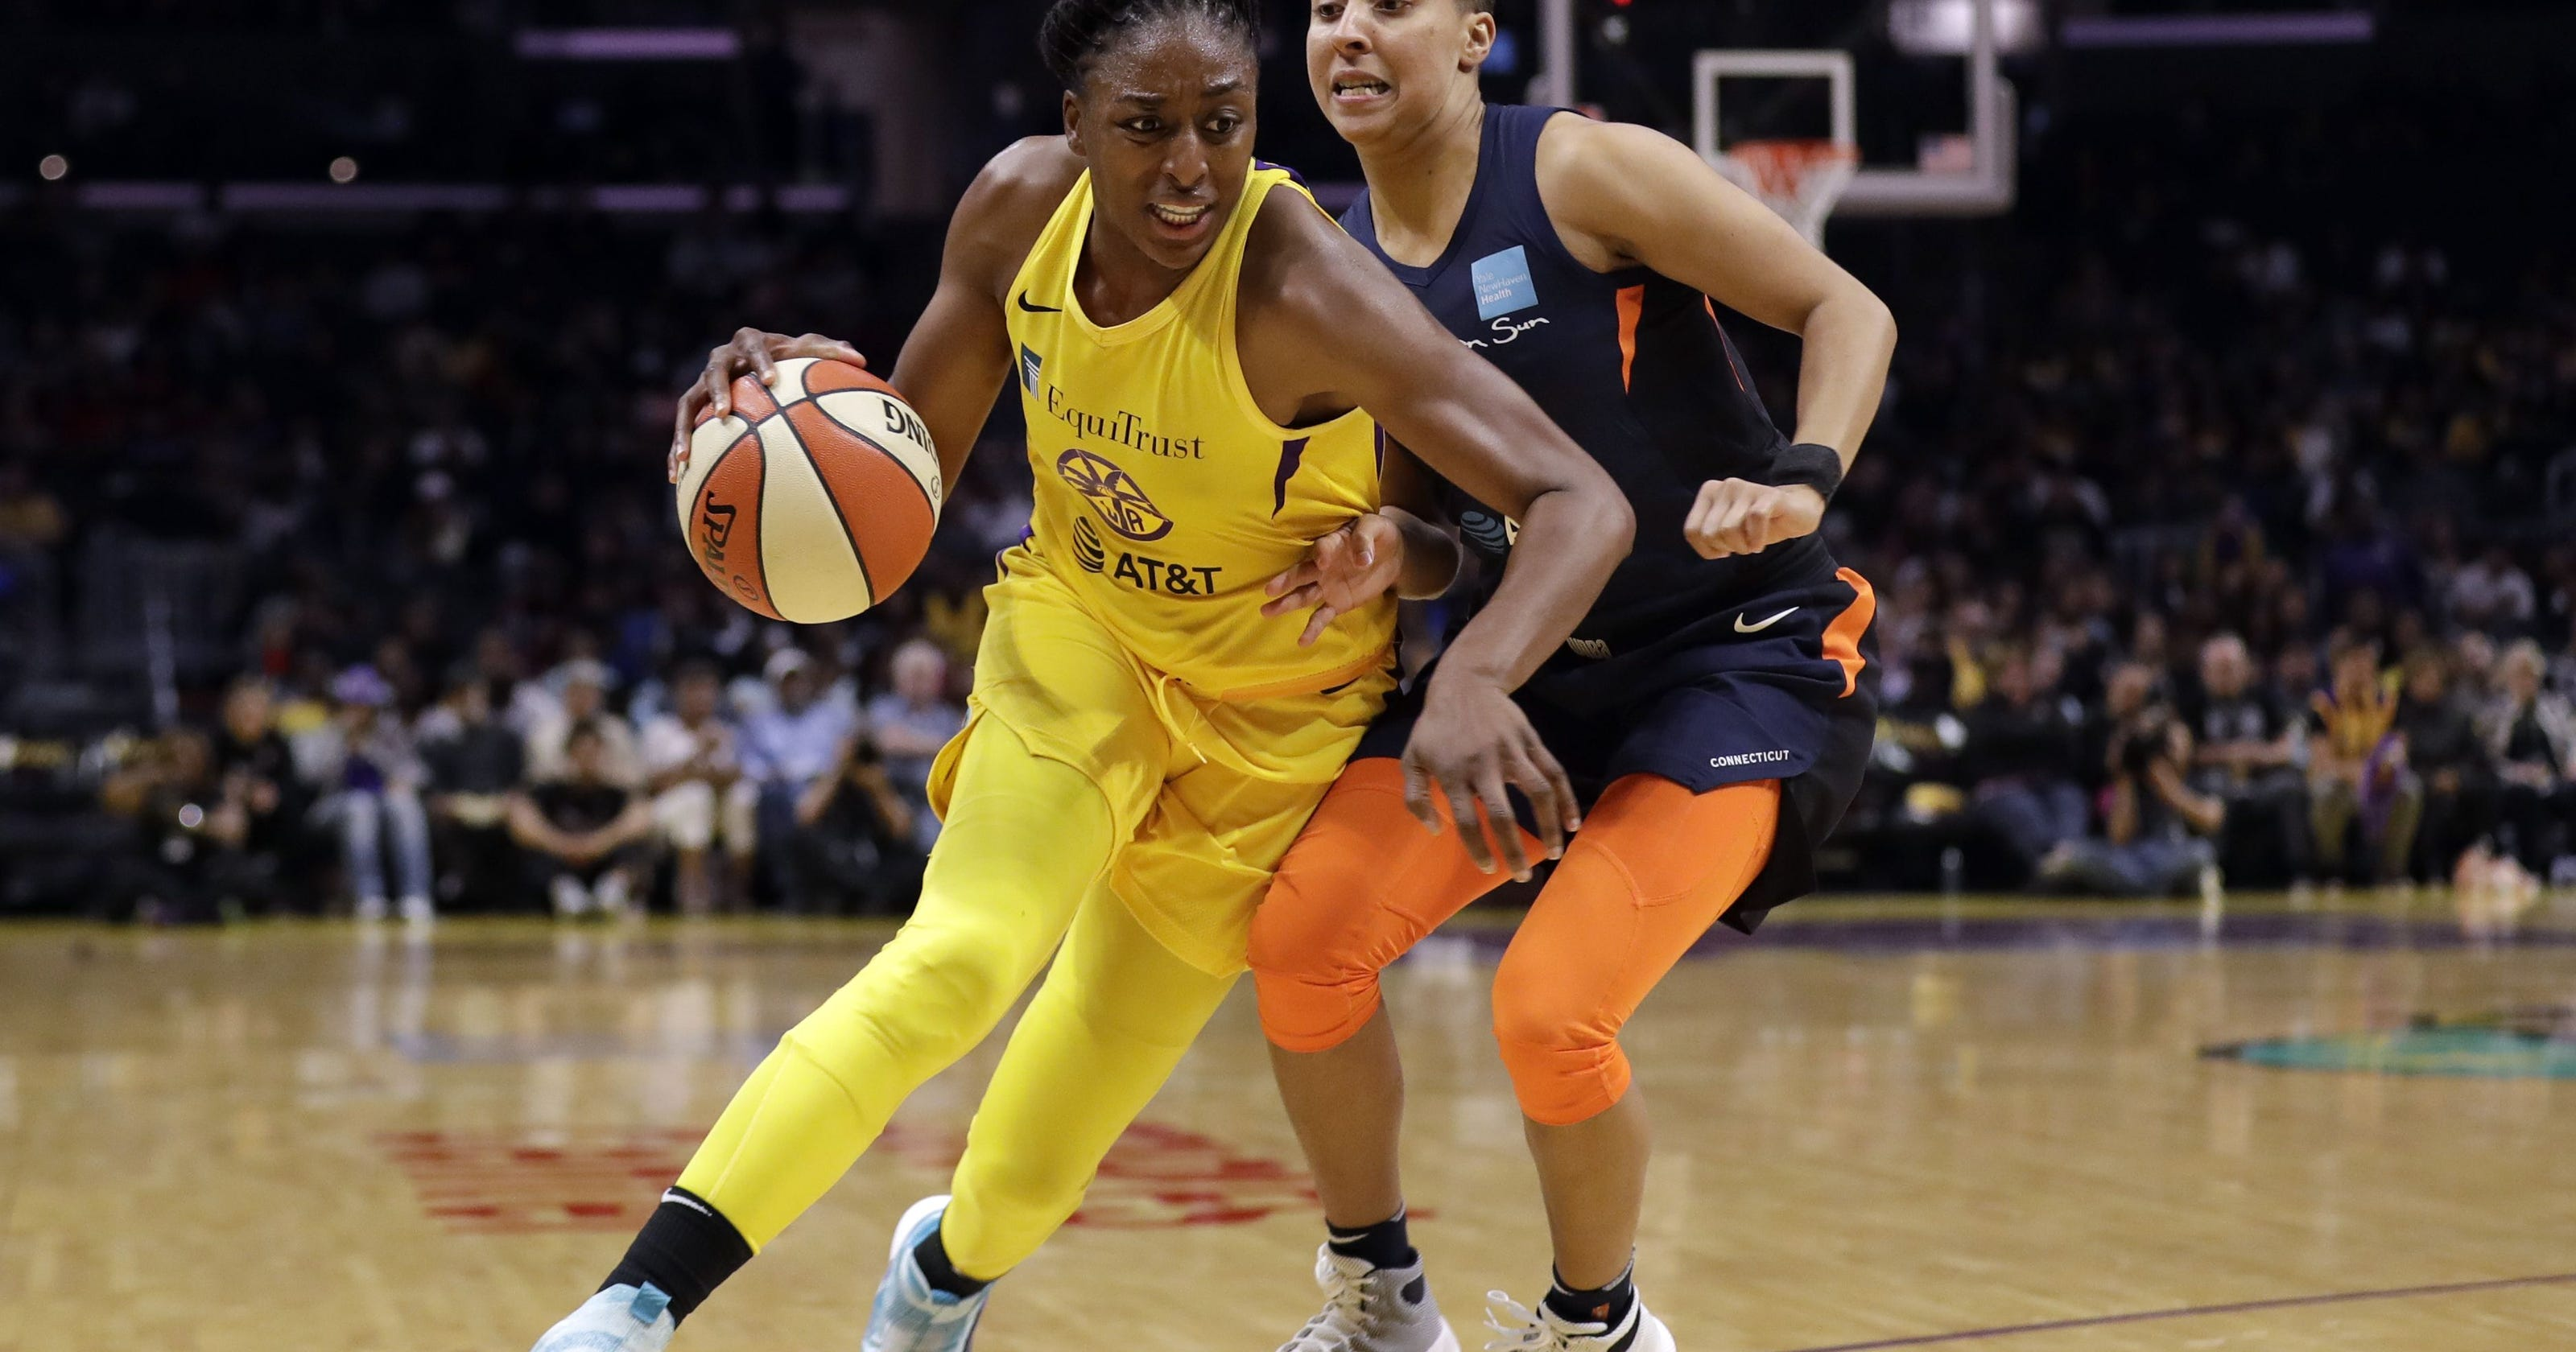 WNBA players Changing the Game for all women with new contract